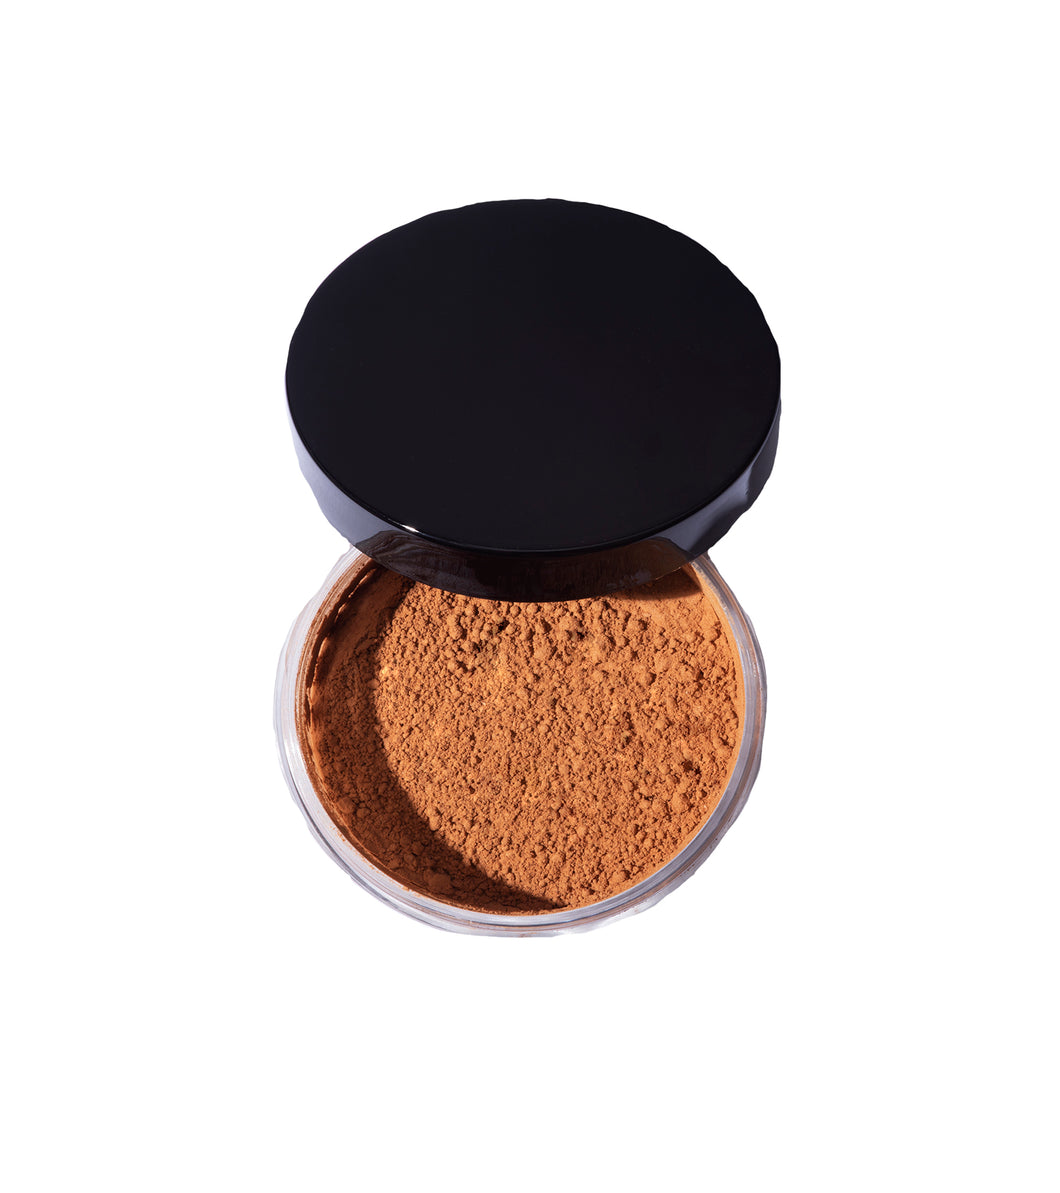 MEDIUM DEEP -SETTING POWDER